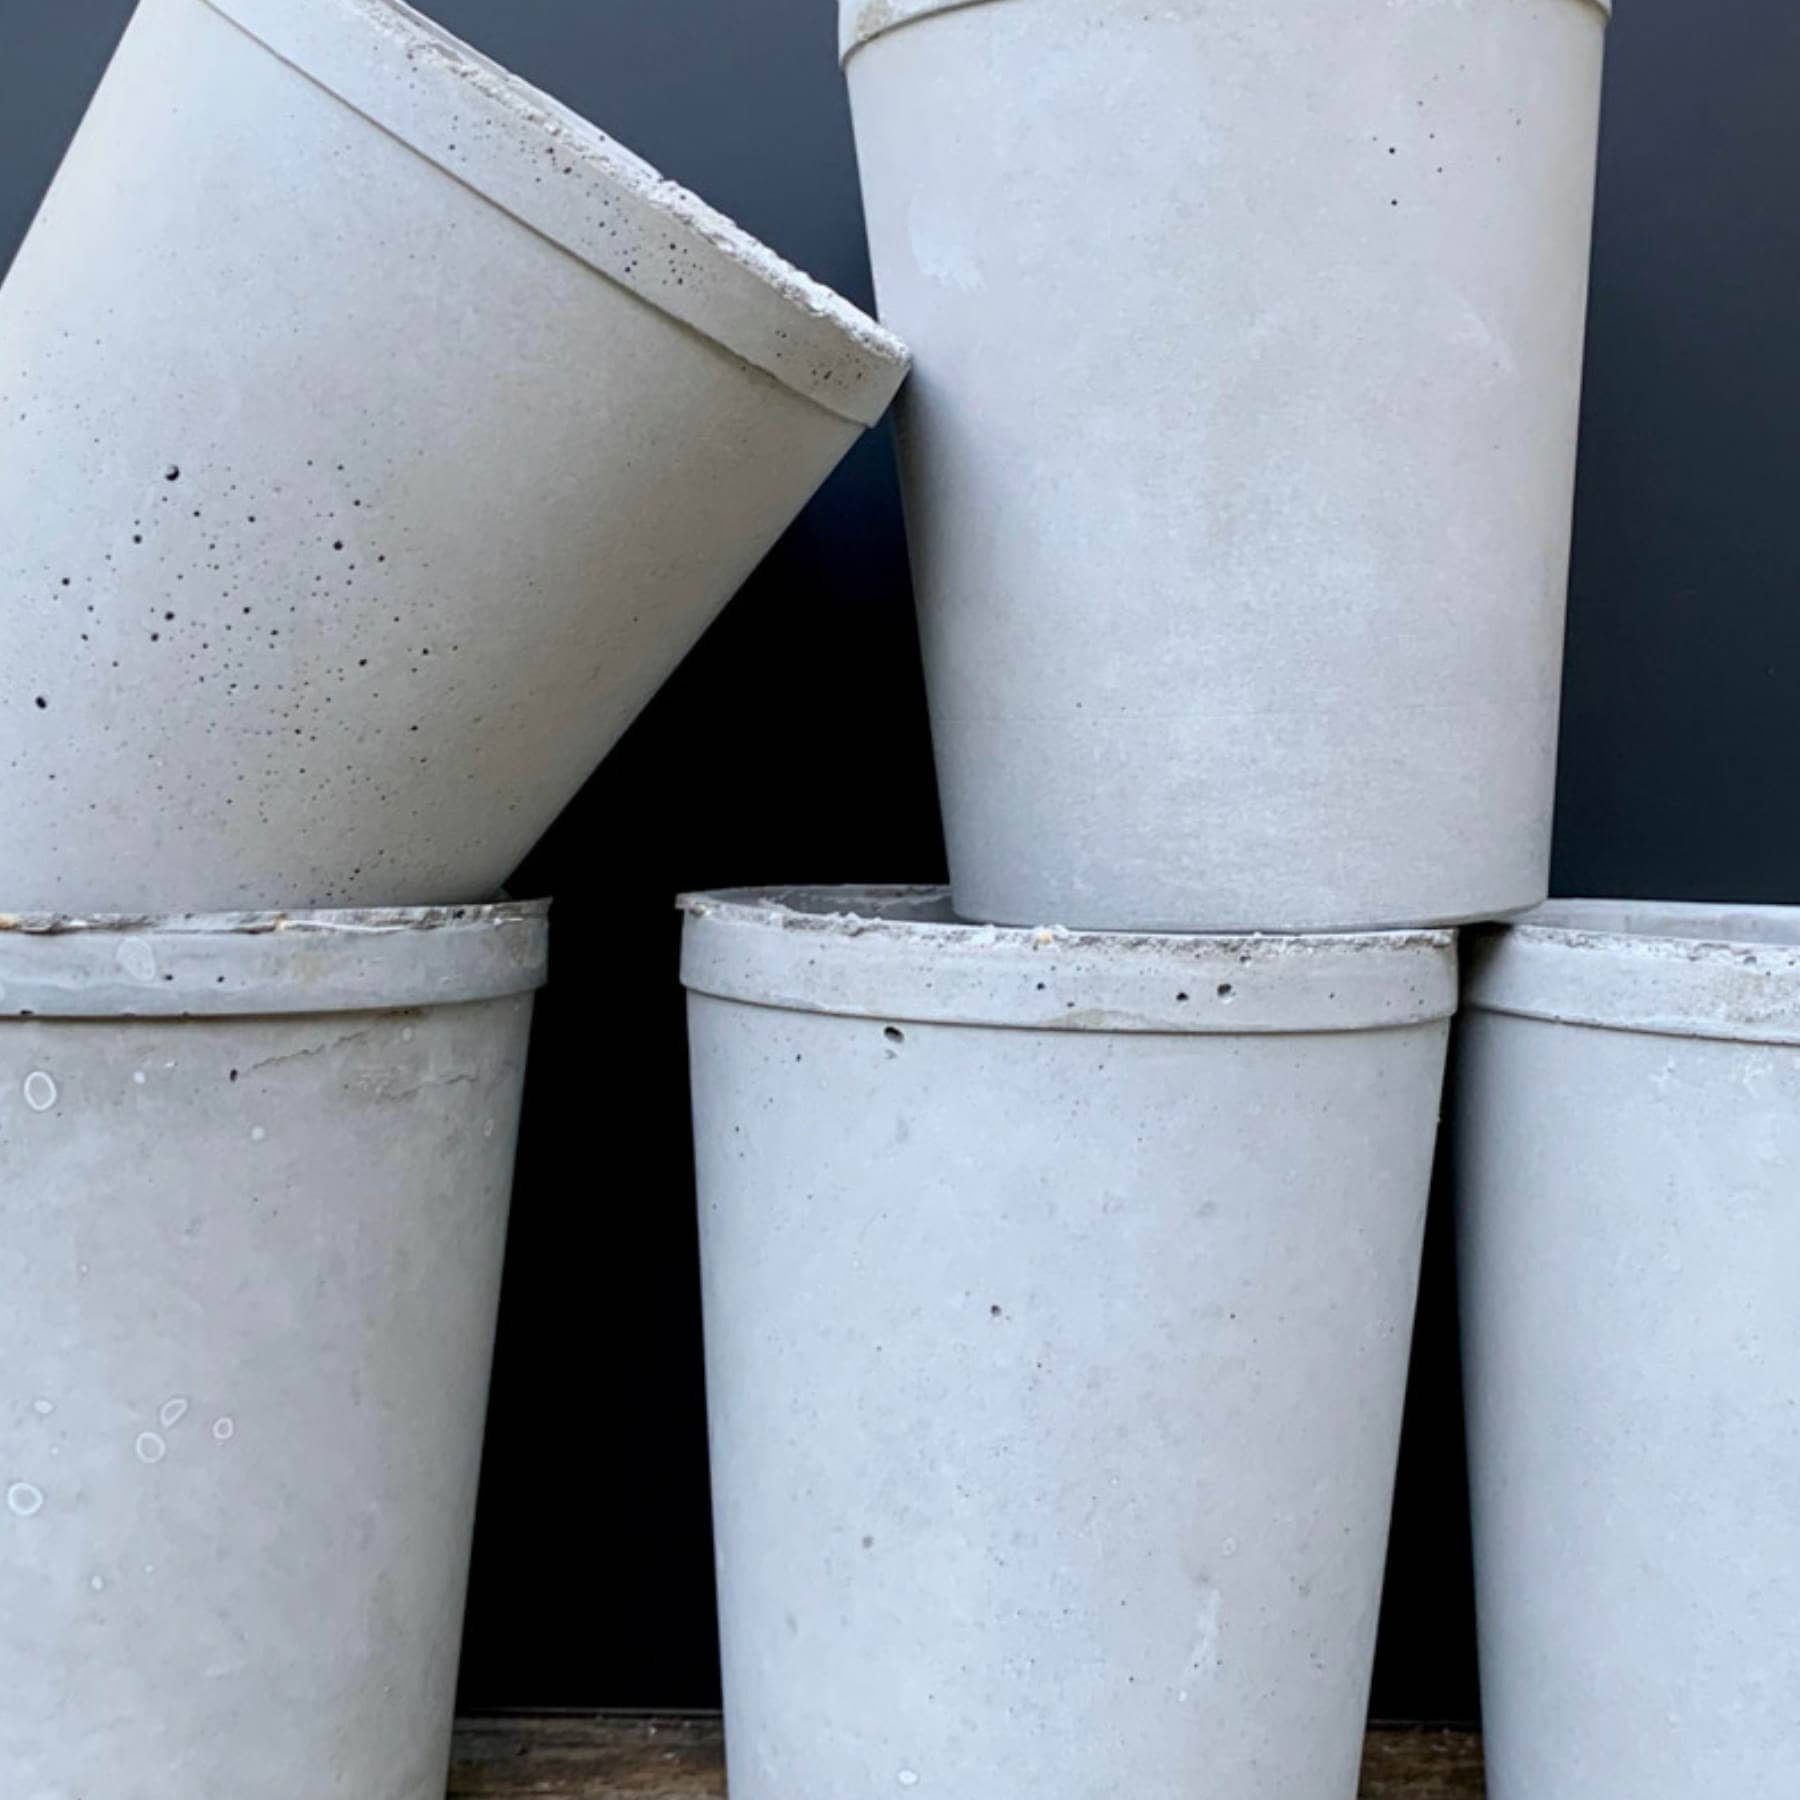 5 concrete vessels made with 5 different mixing ratios of portland cement to sand and gravel